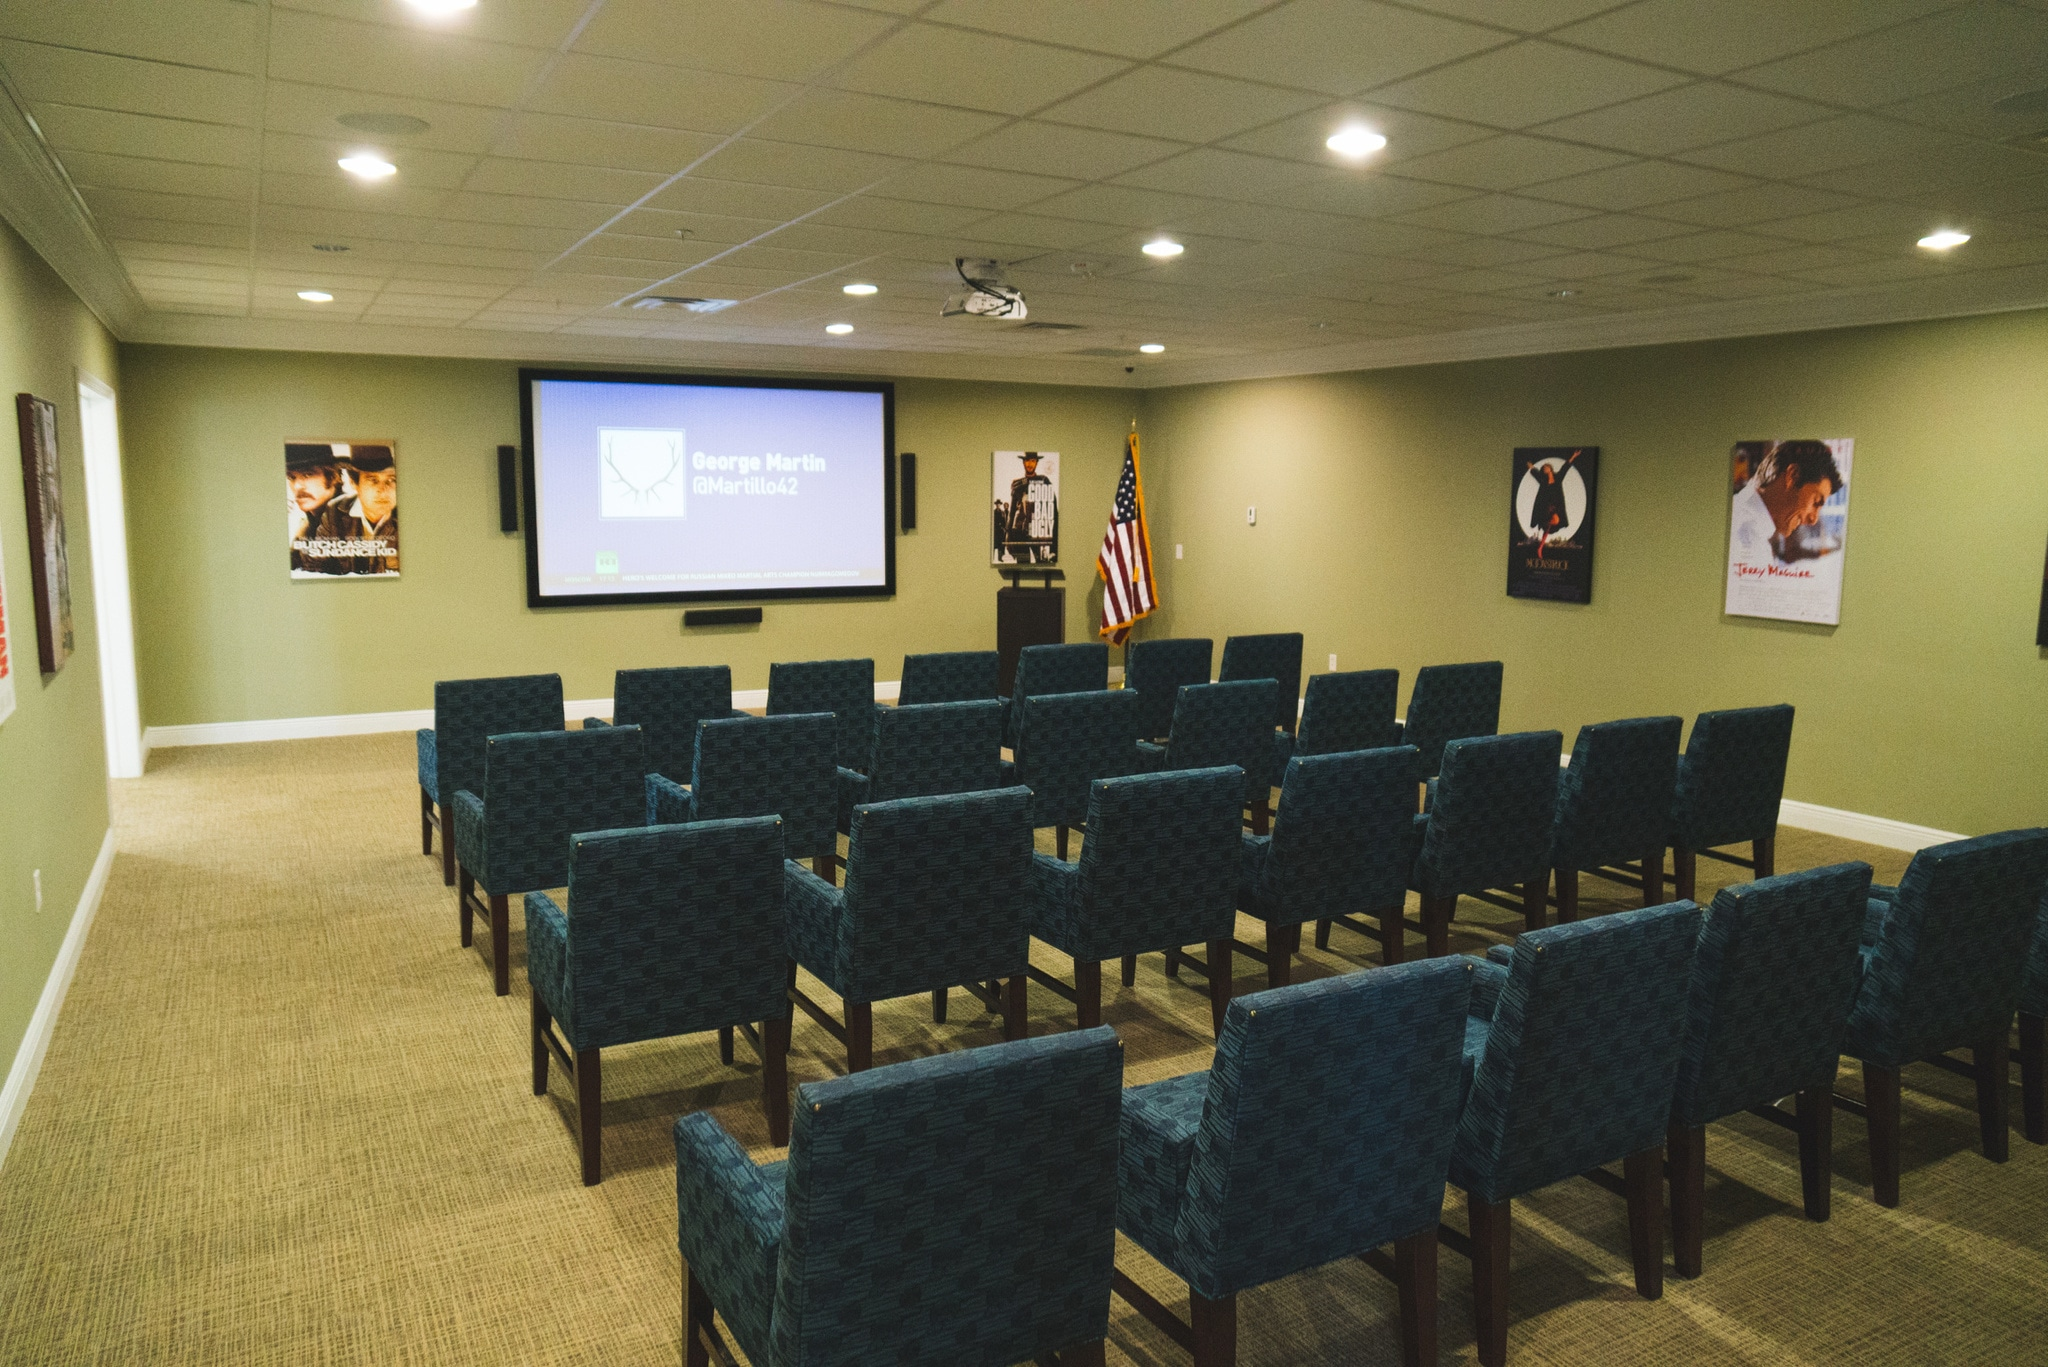 Our Sarasota movie theater offers residents the chance to enjoy movie night and more.